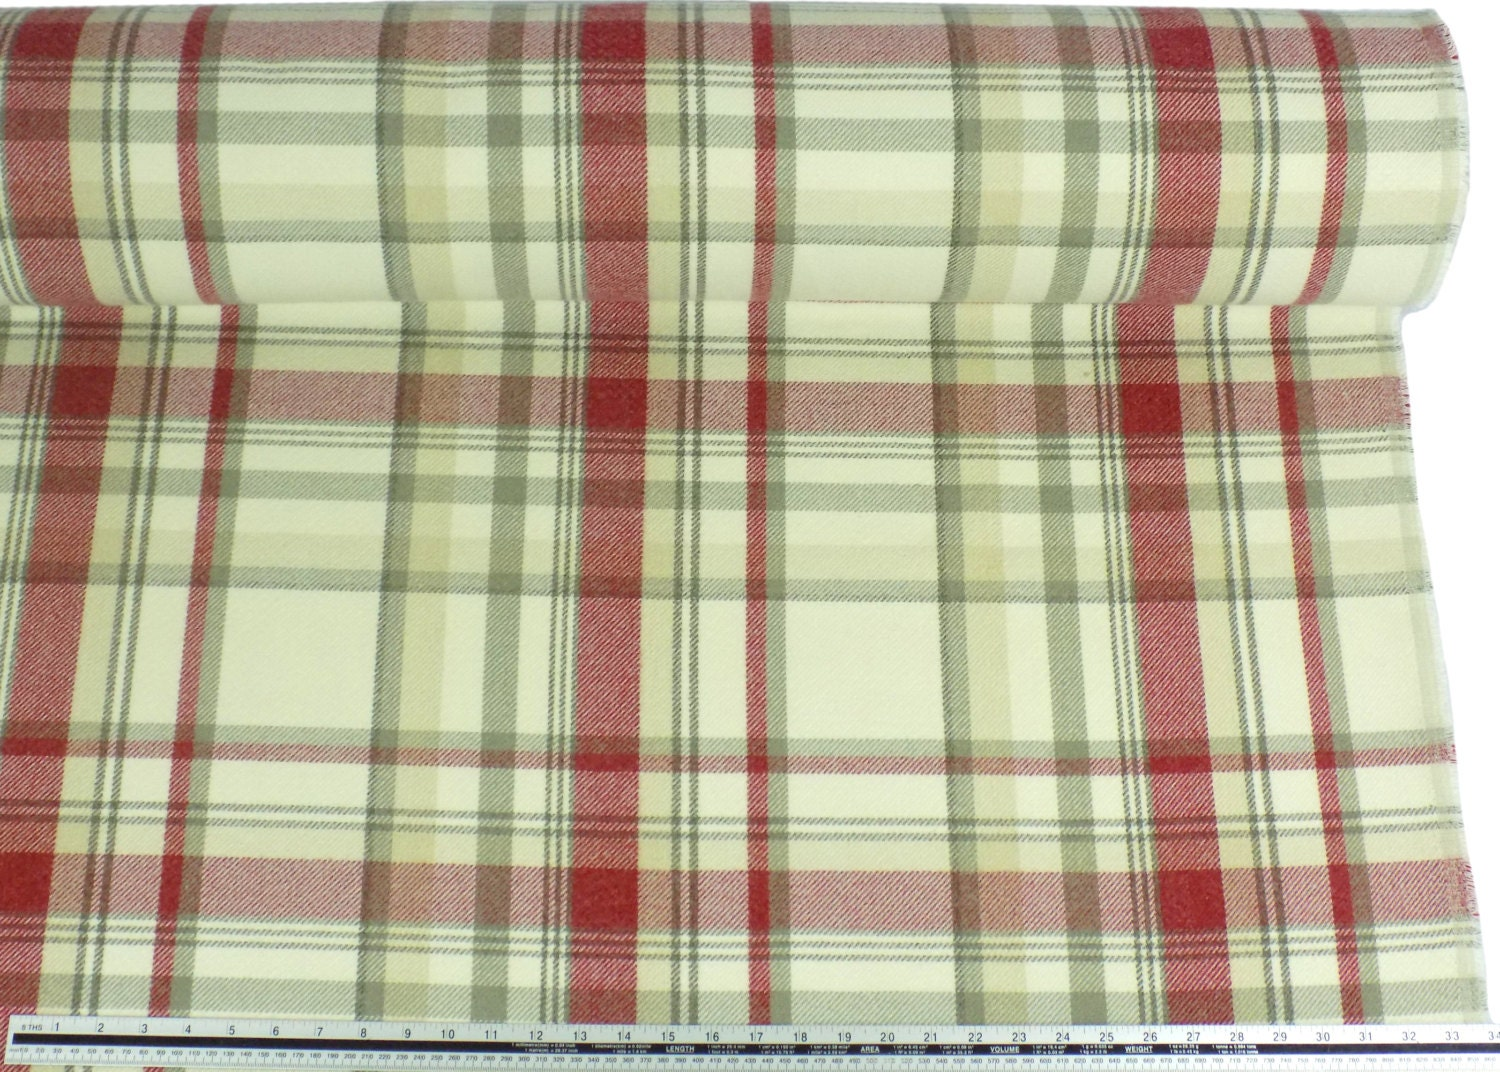 Tartan Check Wool Look And Feel Cream Red Upholstery Fabric